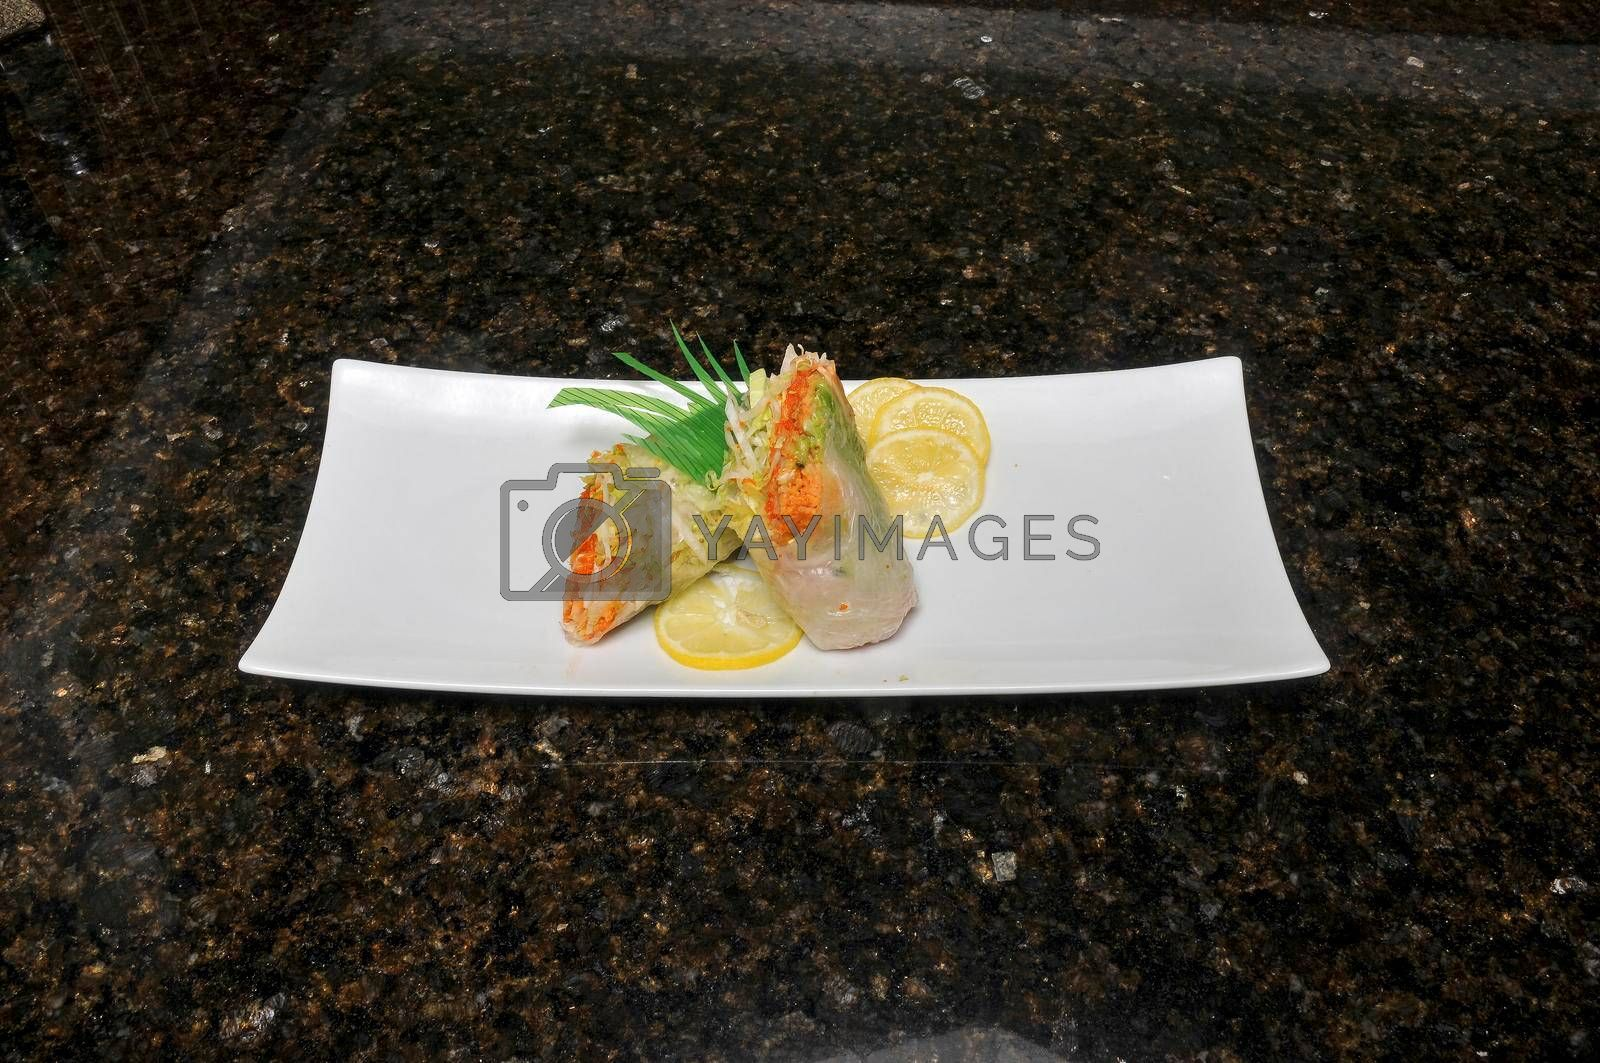 Delicious Japanese cuisine known as a fresh roll